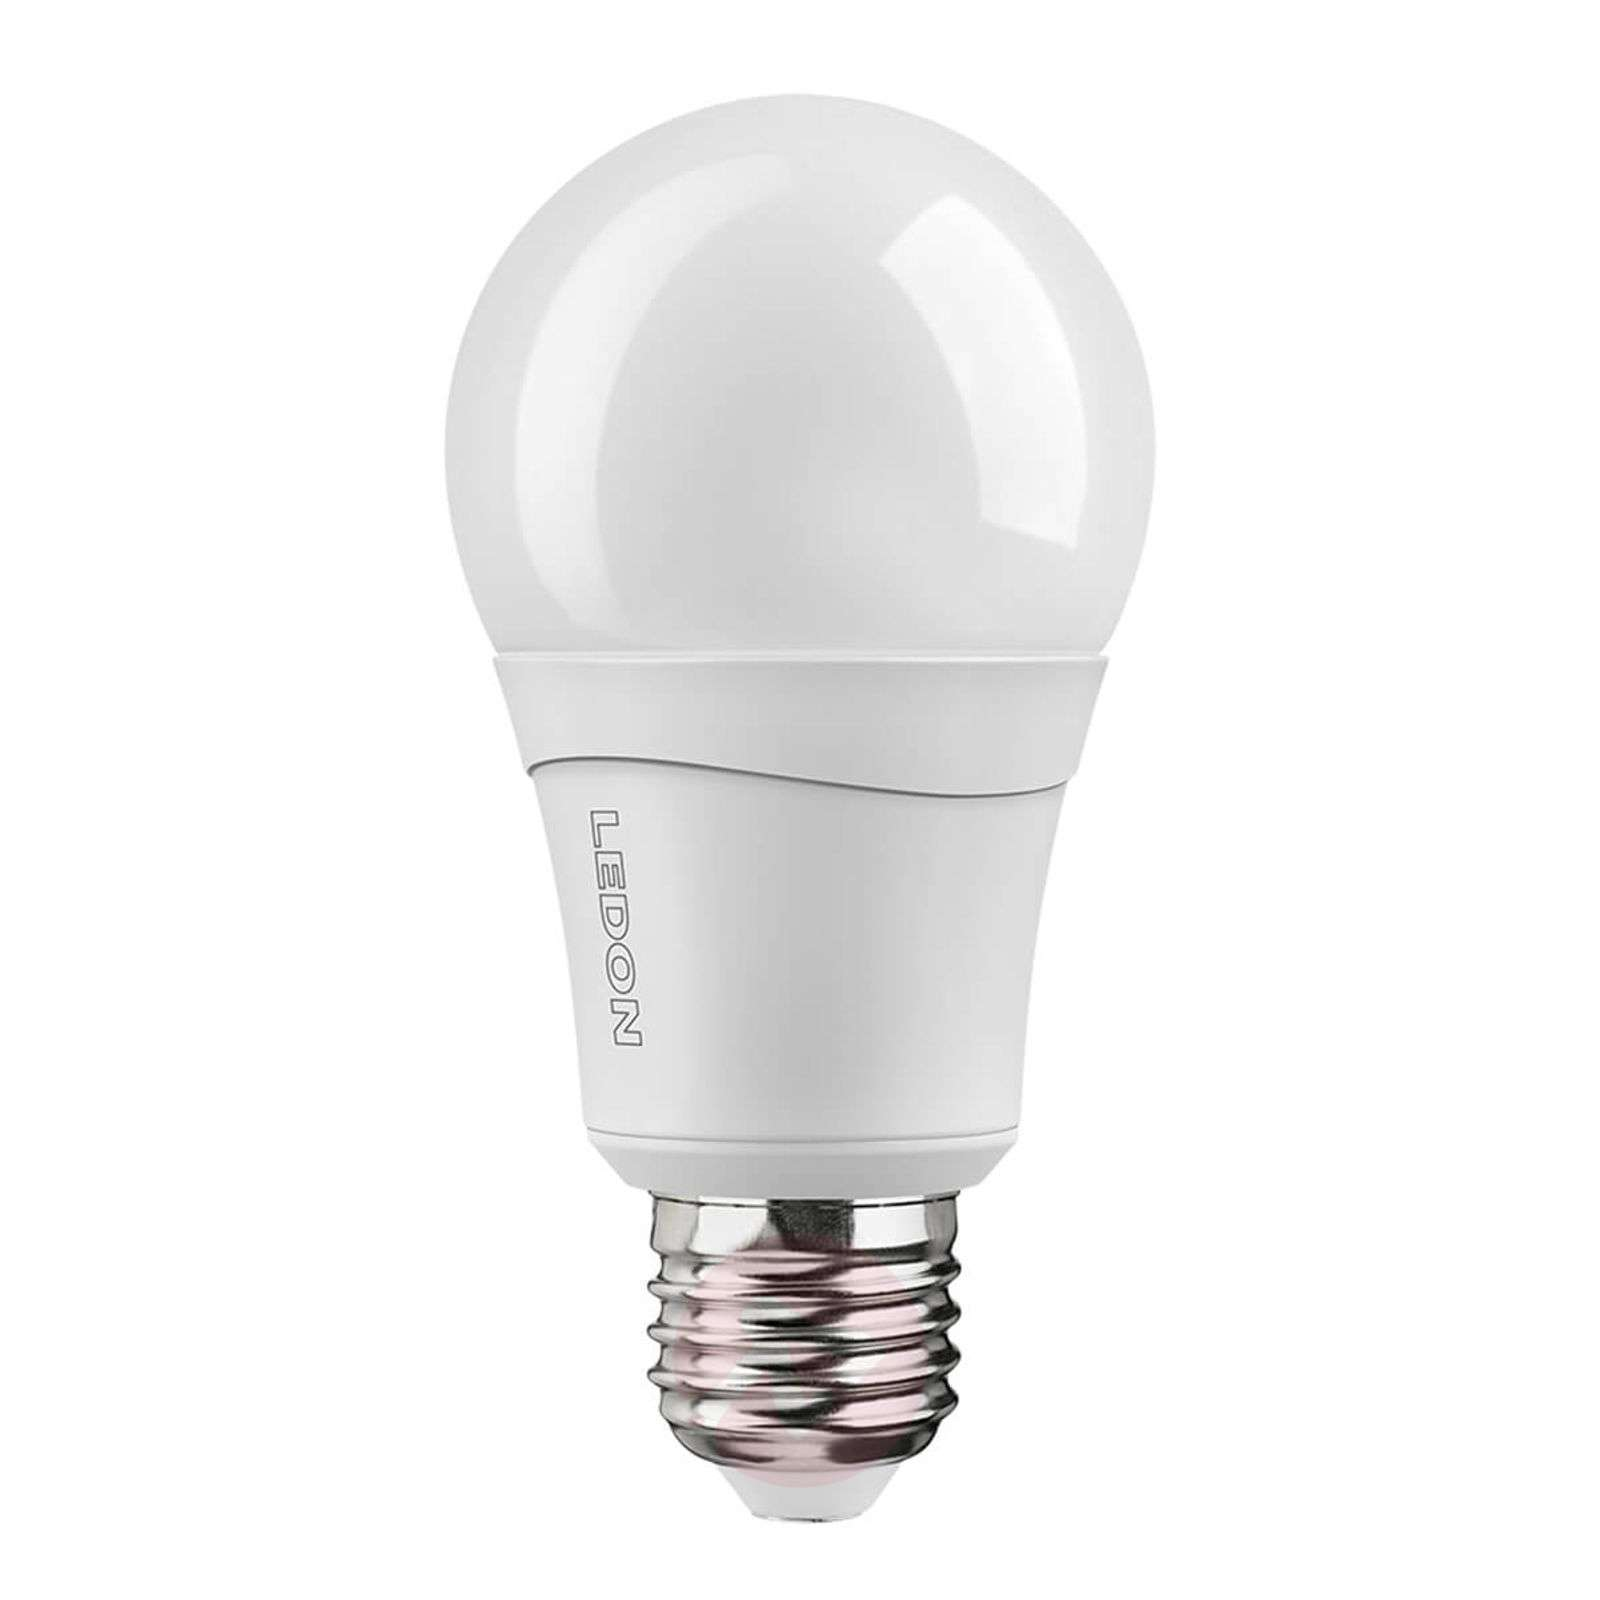 Ampoule LED E27 10,5 W, 800 lumens, sunset dimming-6037132-01